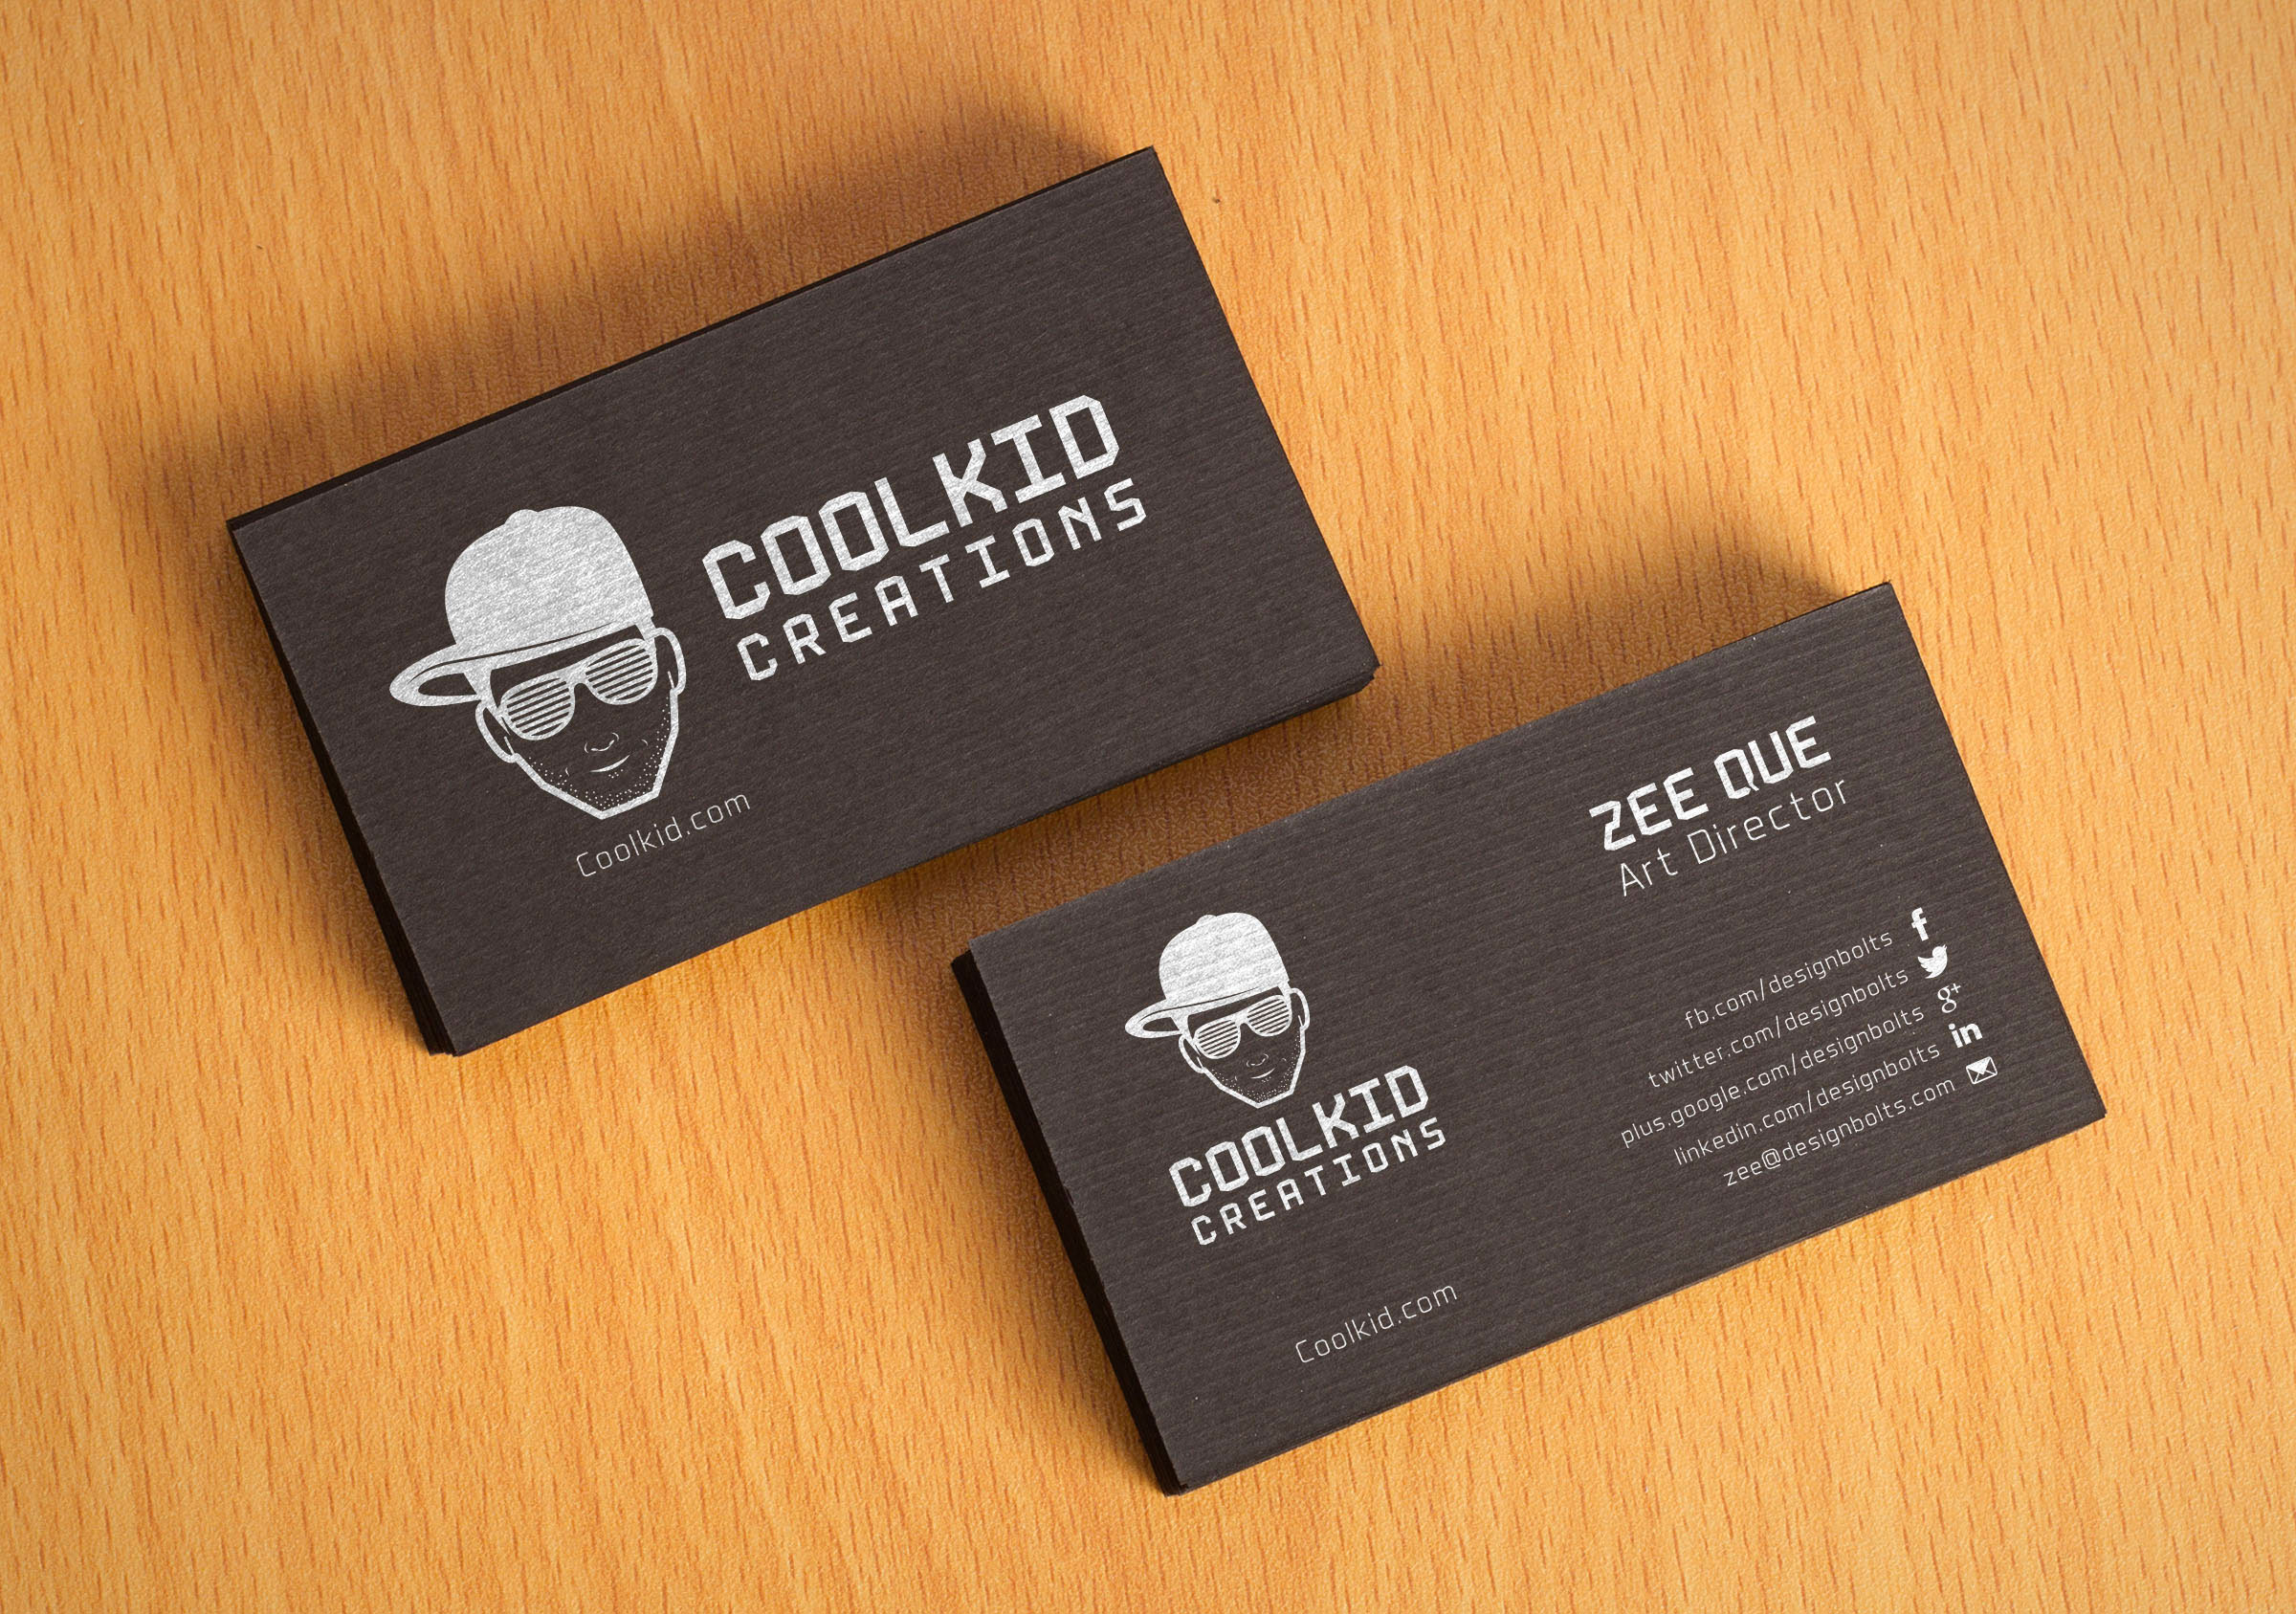 business card presentation template psd - free black textured business card design template mockup psd